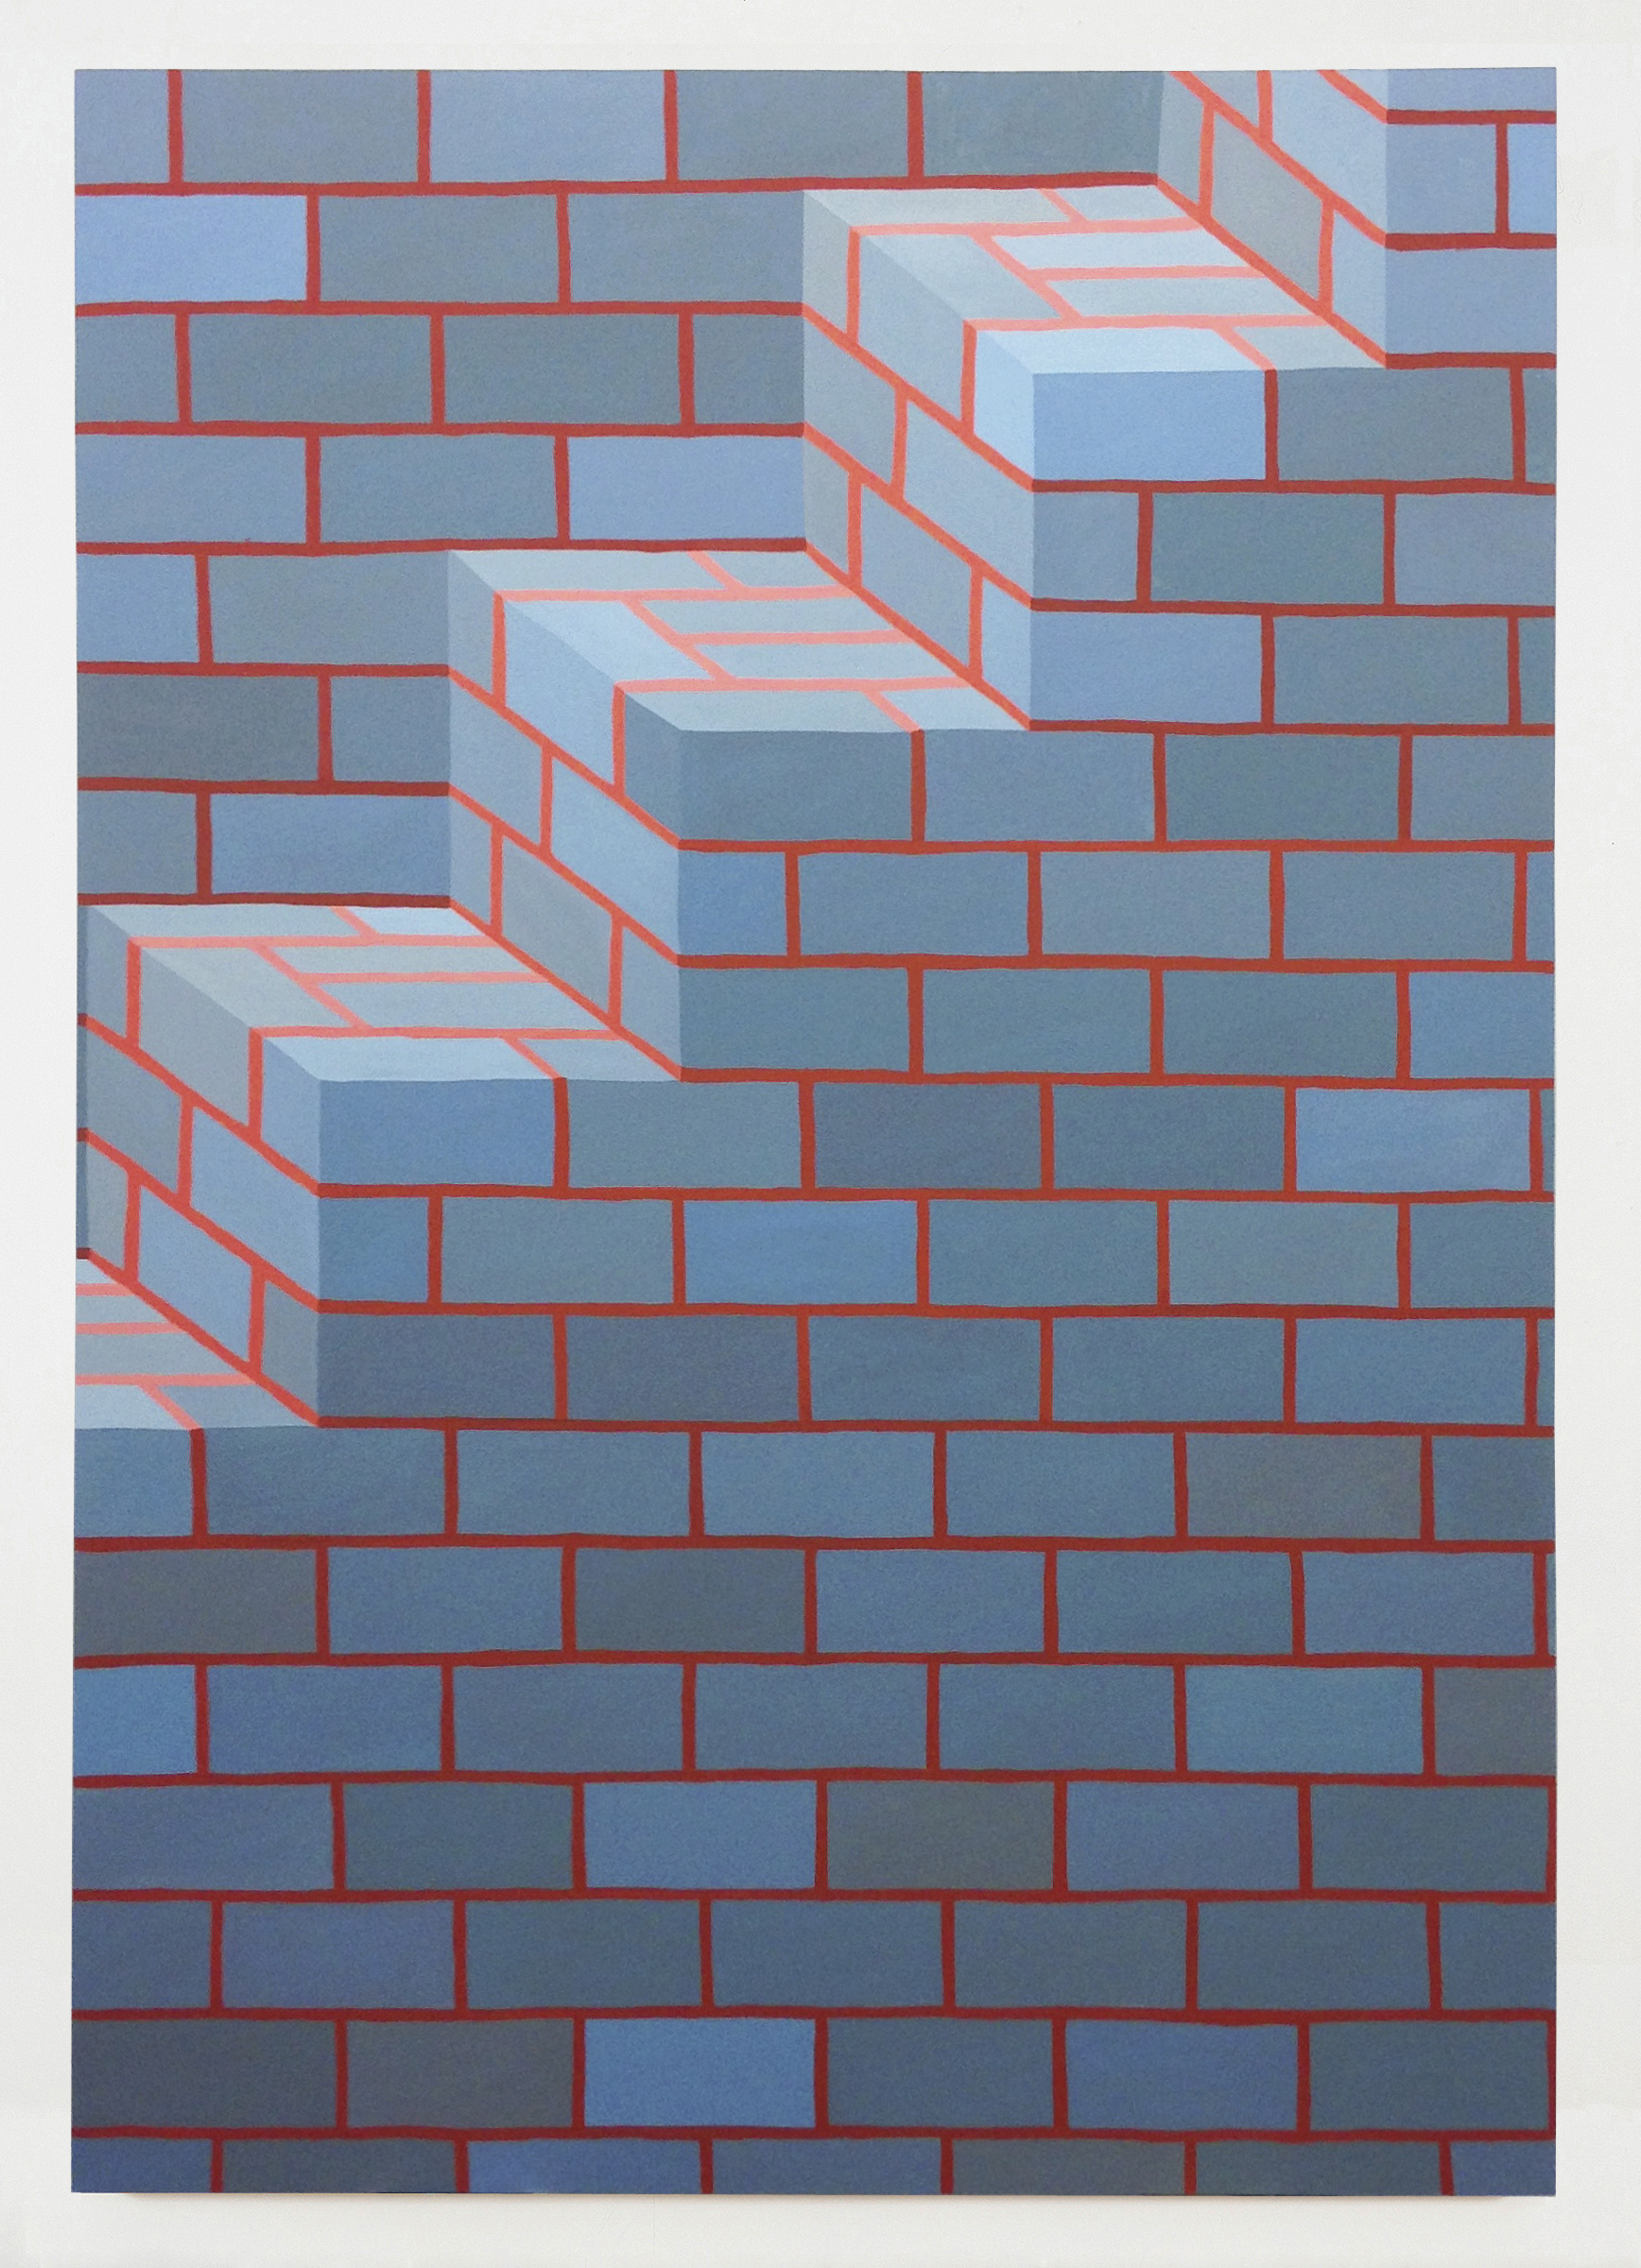 Corydon Cowansage, Stairs 4, 2017, acrylic on canvas, 72 x 50 inches